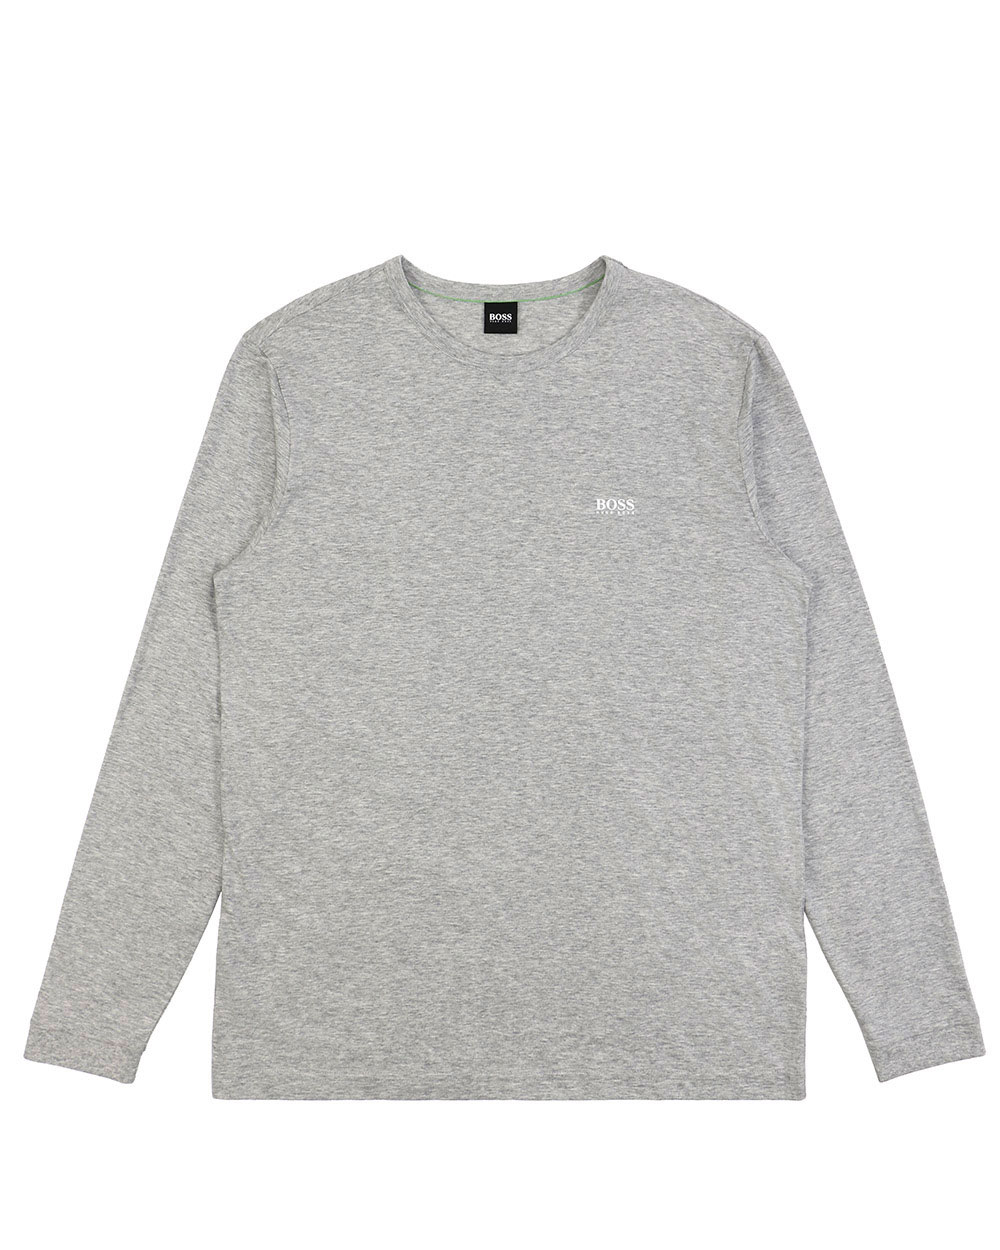 Logo Round Neck Long Sleeves T-shirt